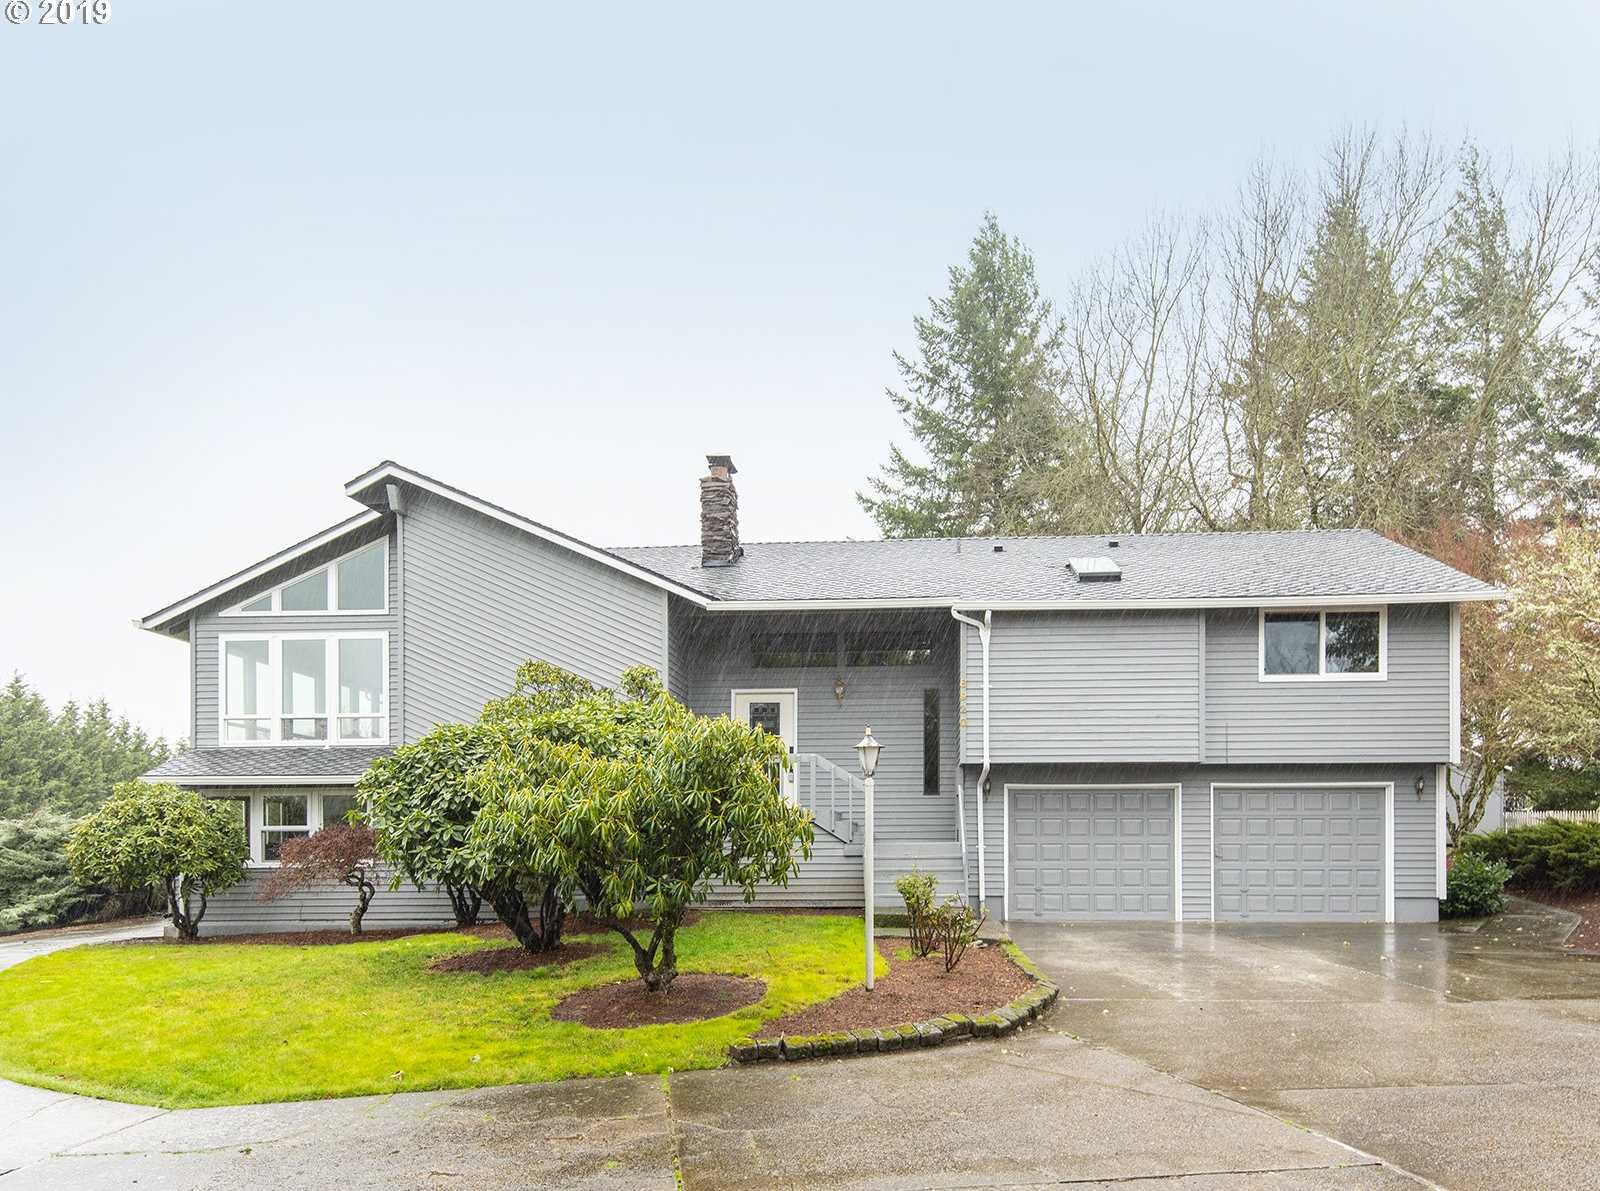 $1,150,000 - 4Br/3Ba -  for Sale in Cooper Mt, Beaverton